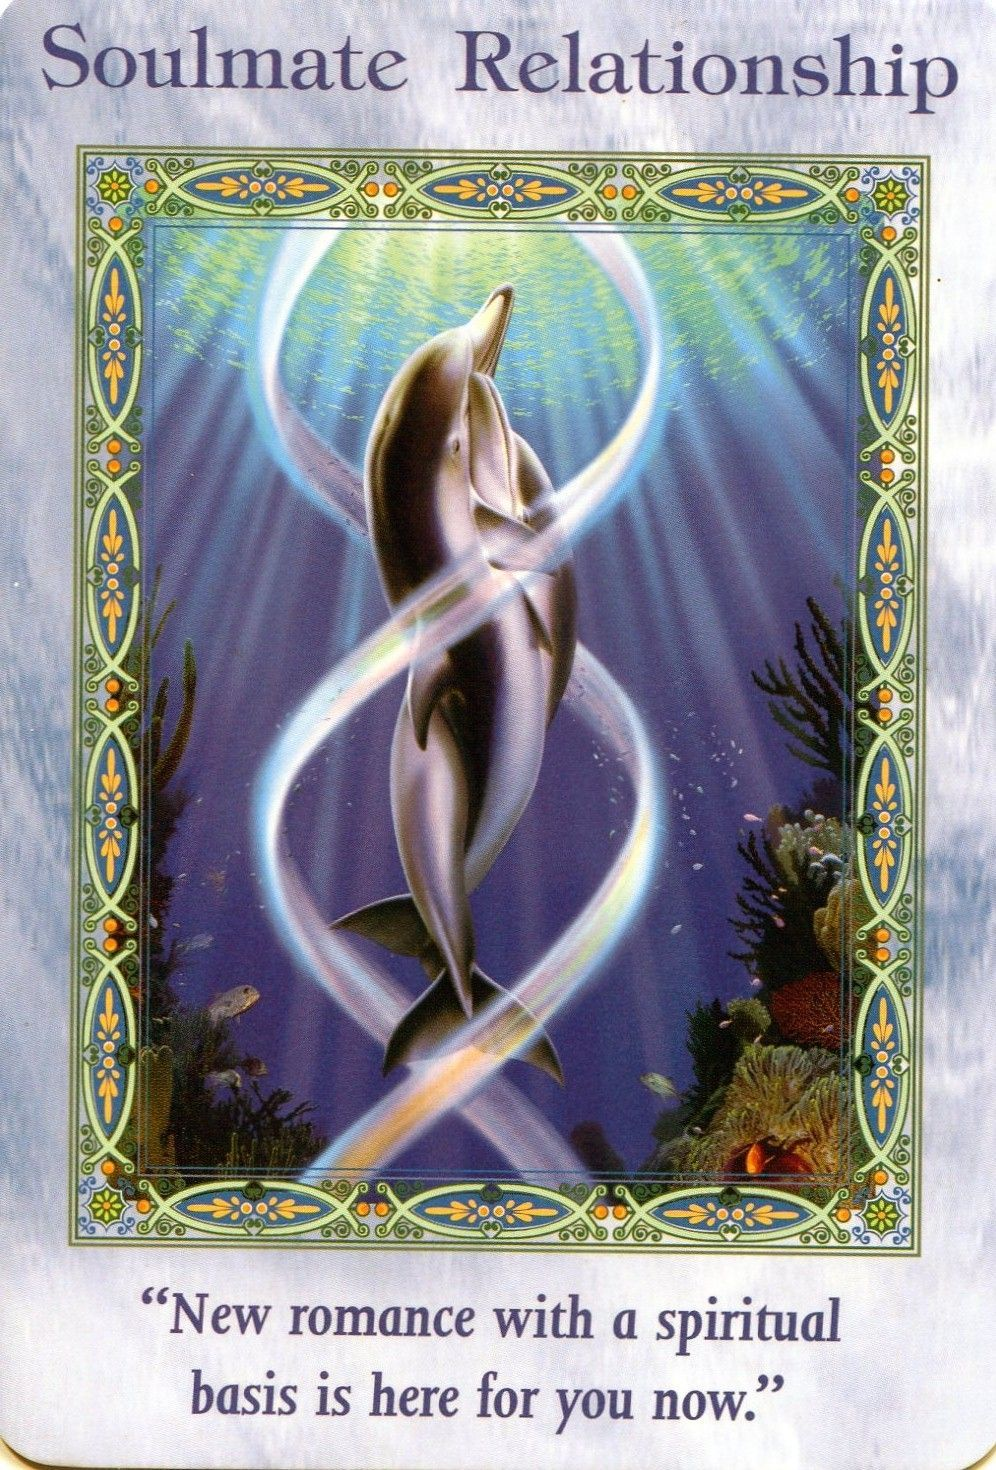 Soulmate Relationship - Magical Mermaids and Dolphins